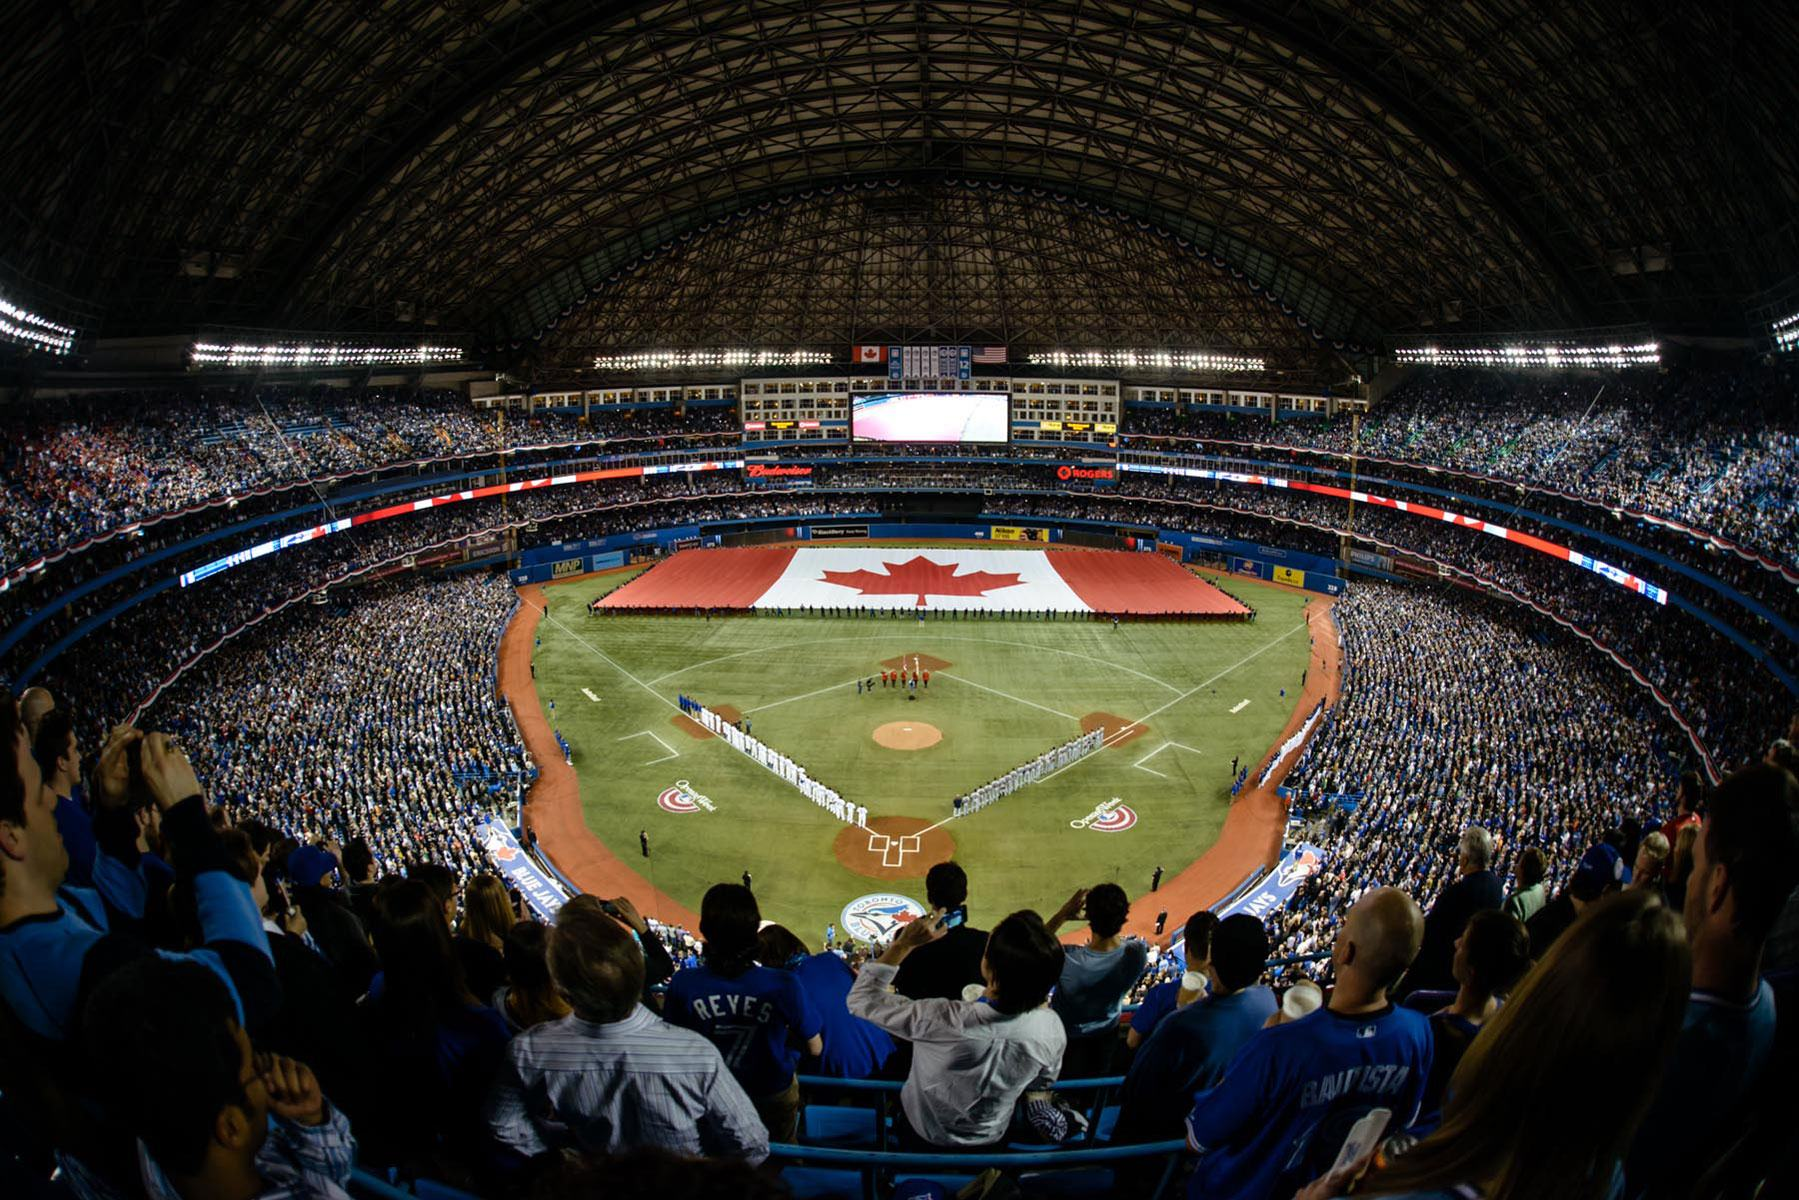 TORONTO BLUE JAYS mlb baseball 18 wallpaper background 1799x1200